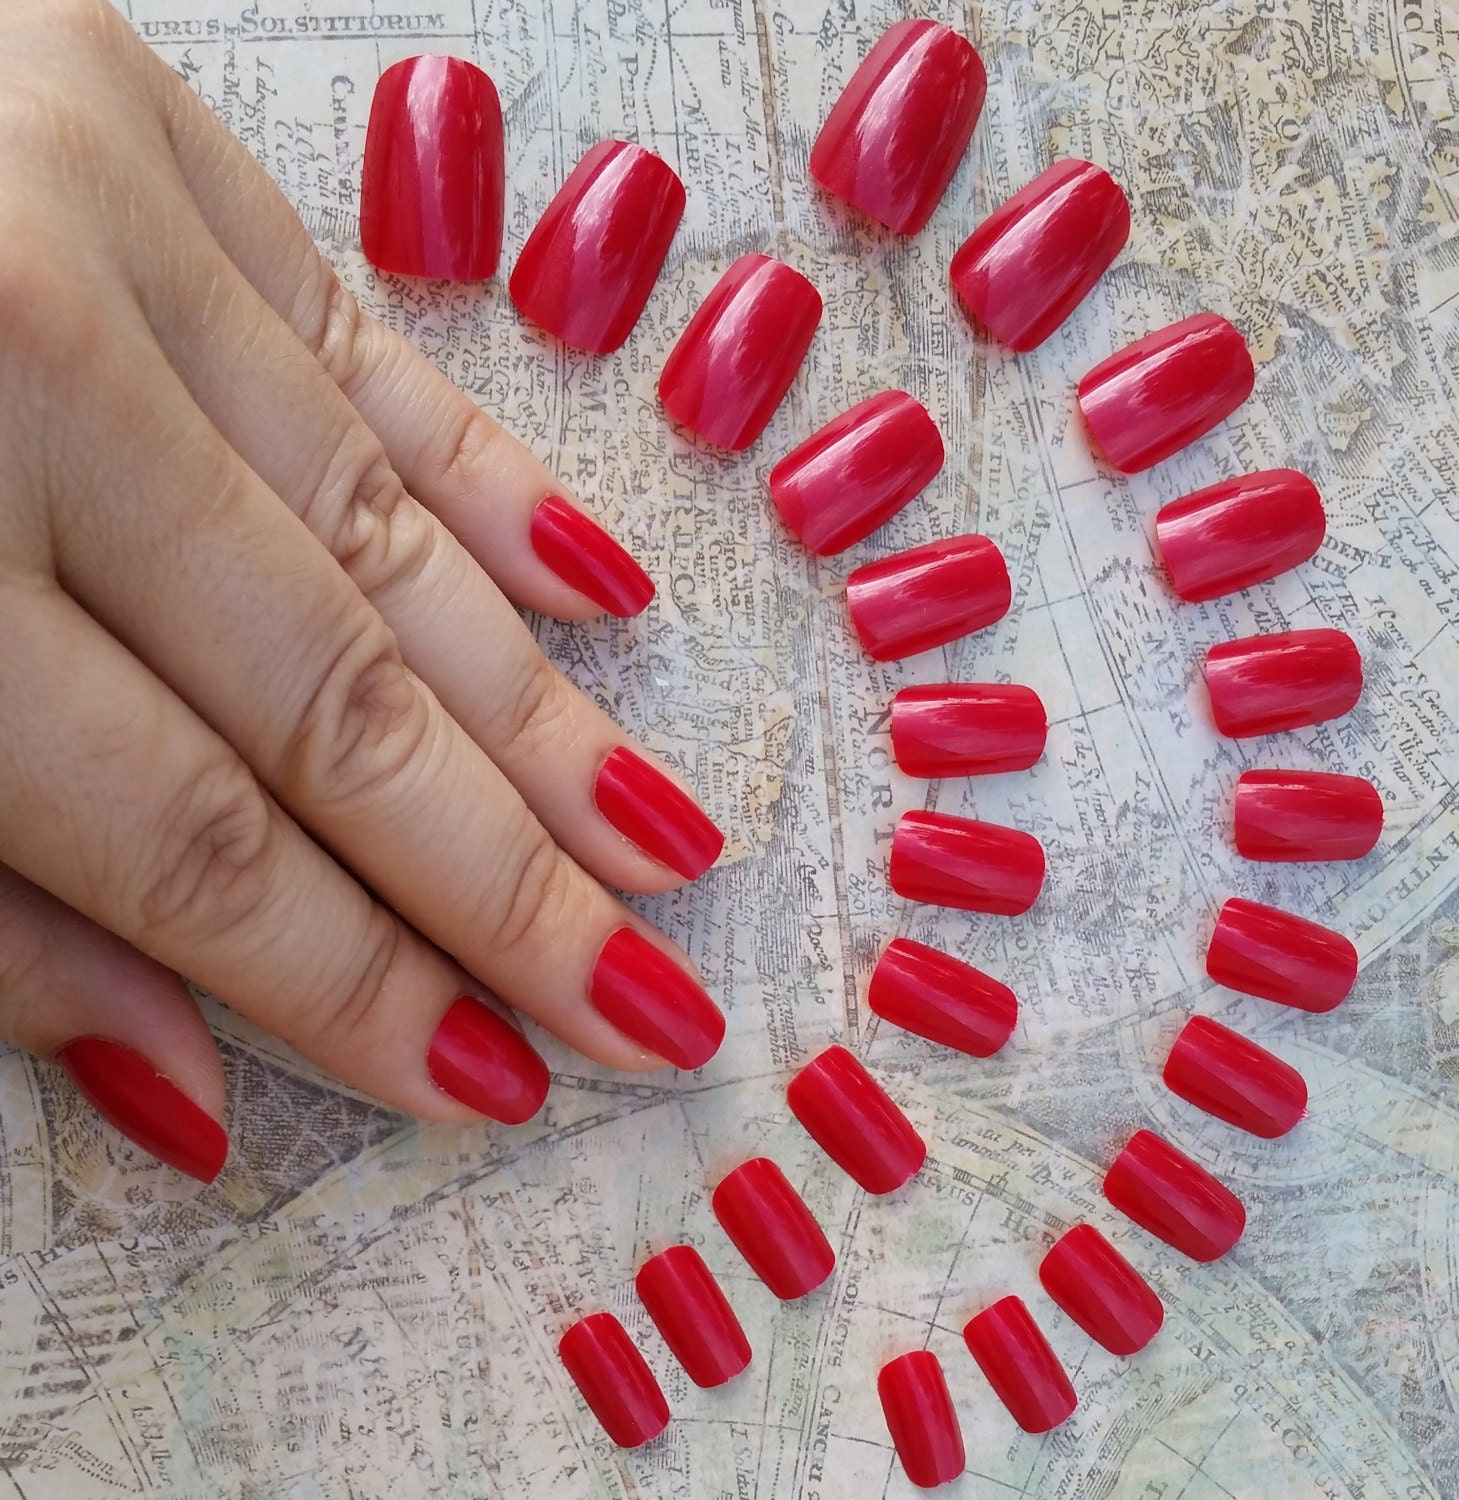 24 Short Red Nails Press on Nails Glue on Nails Blood